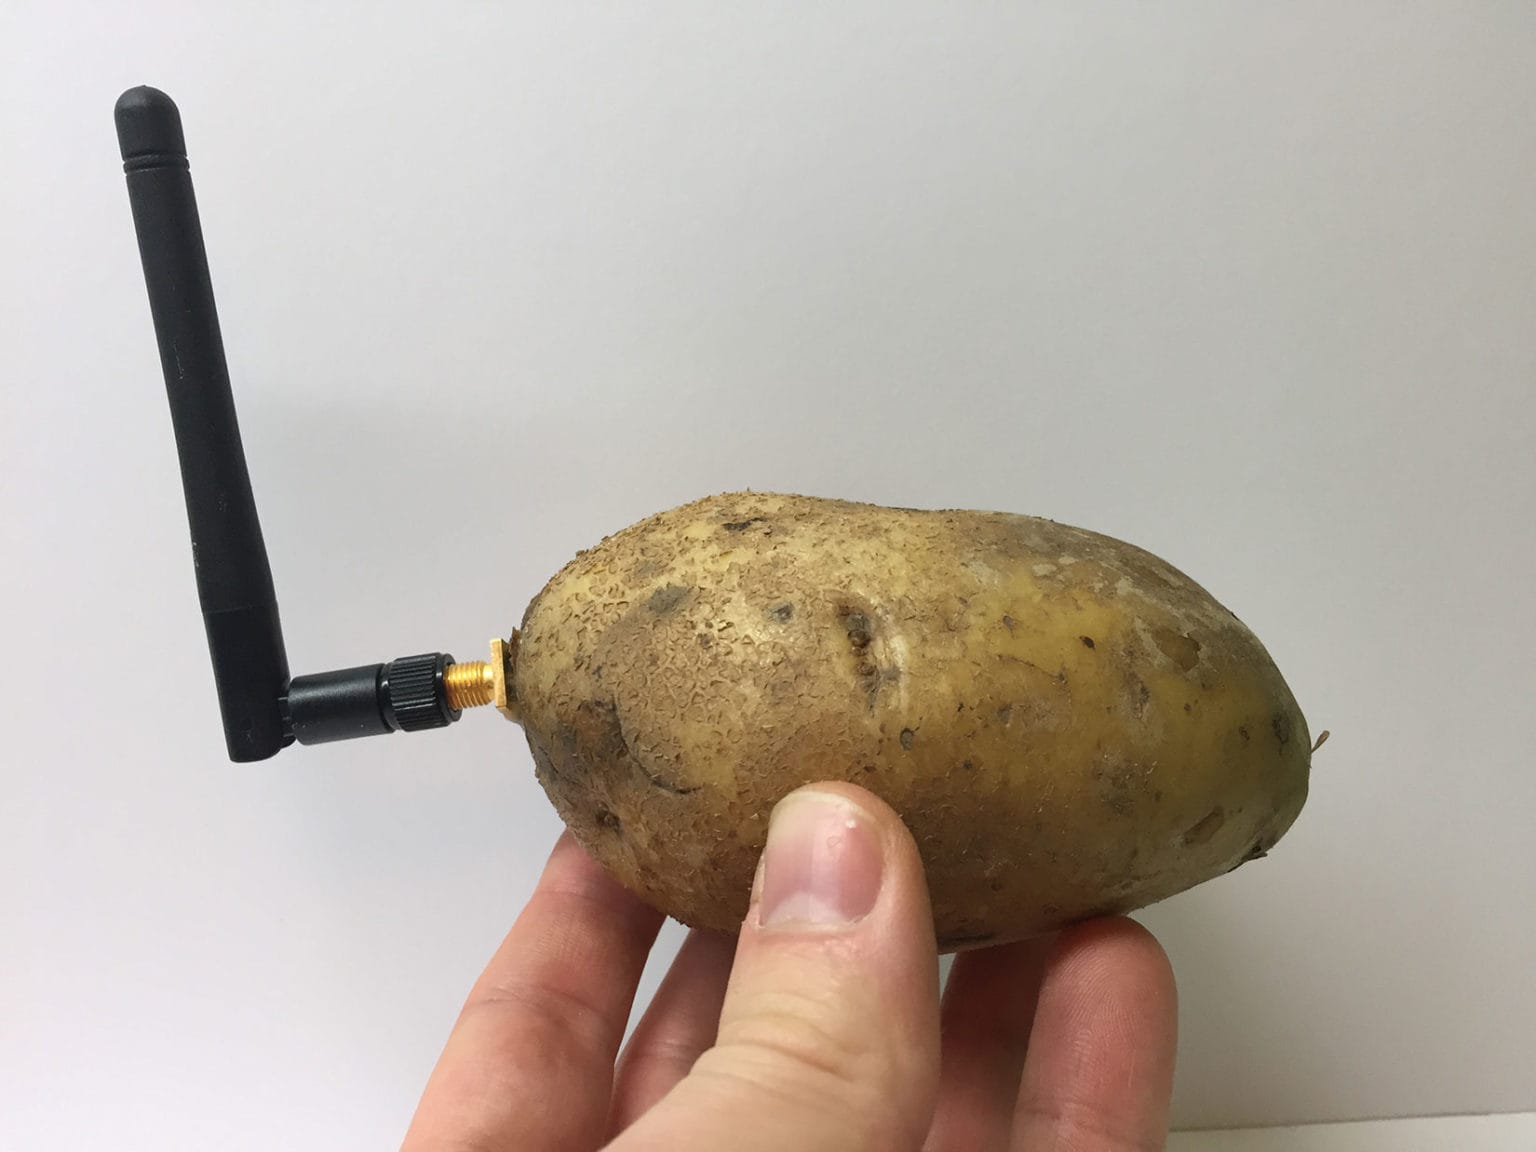 Smart Potato gag at CES 2020